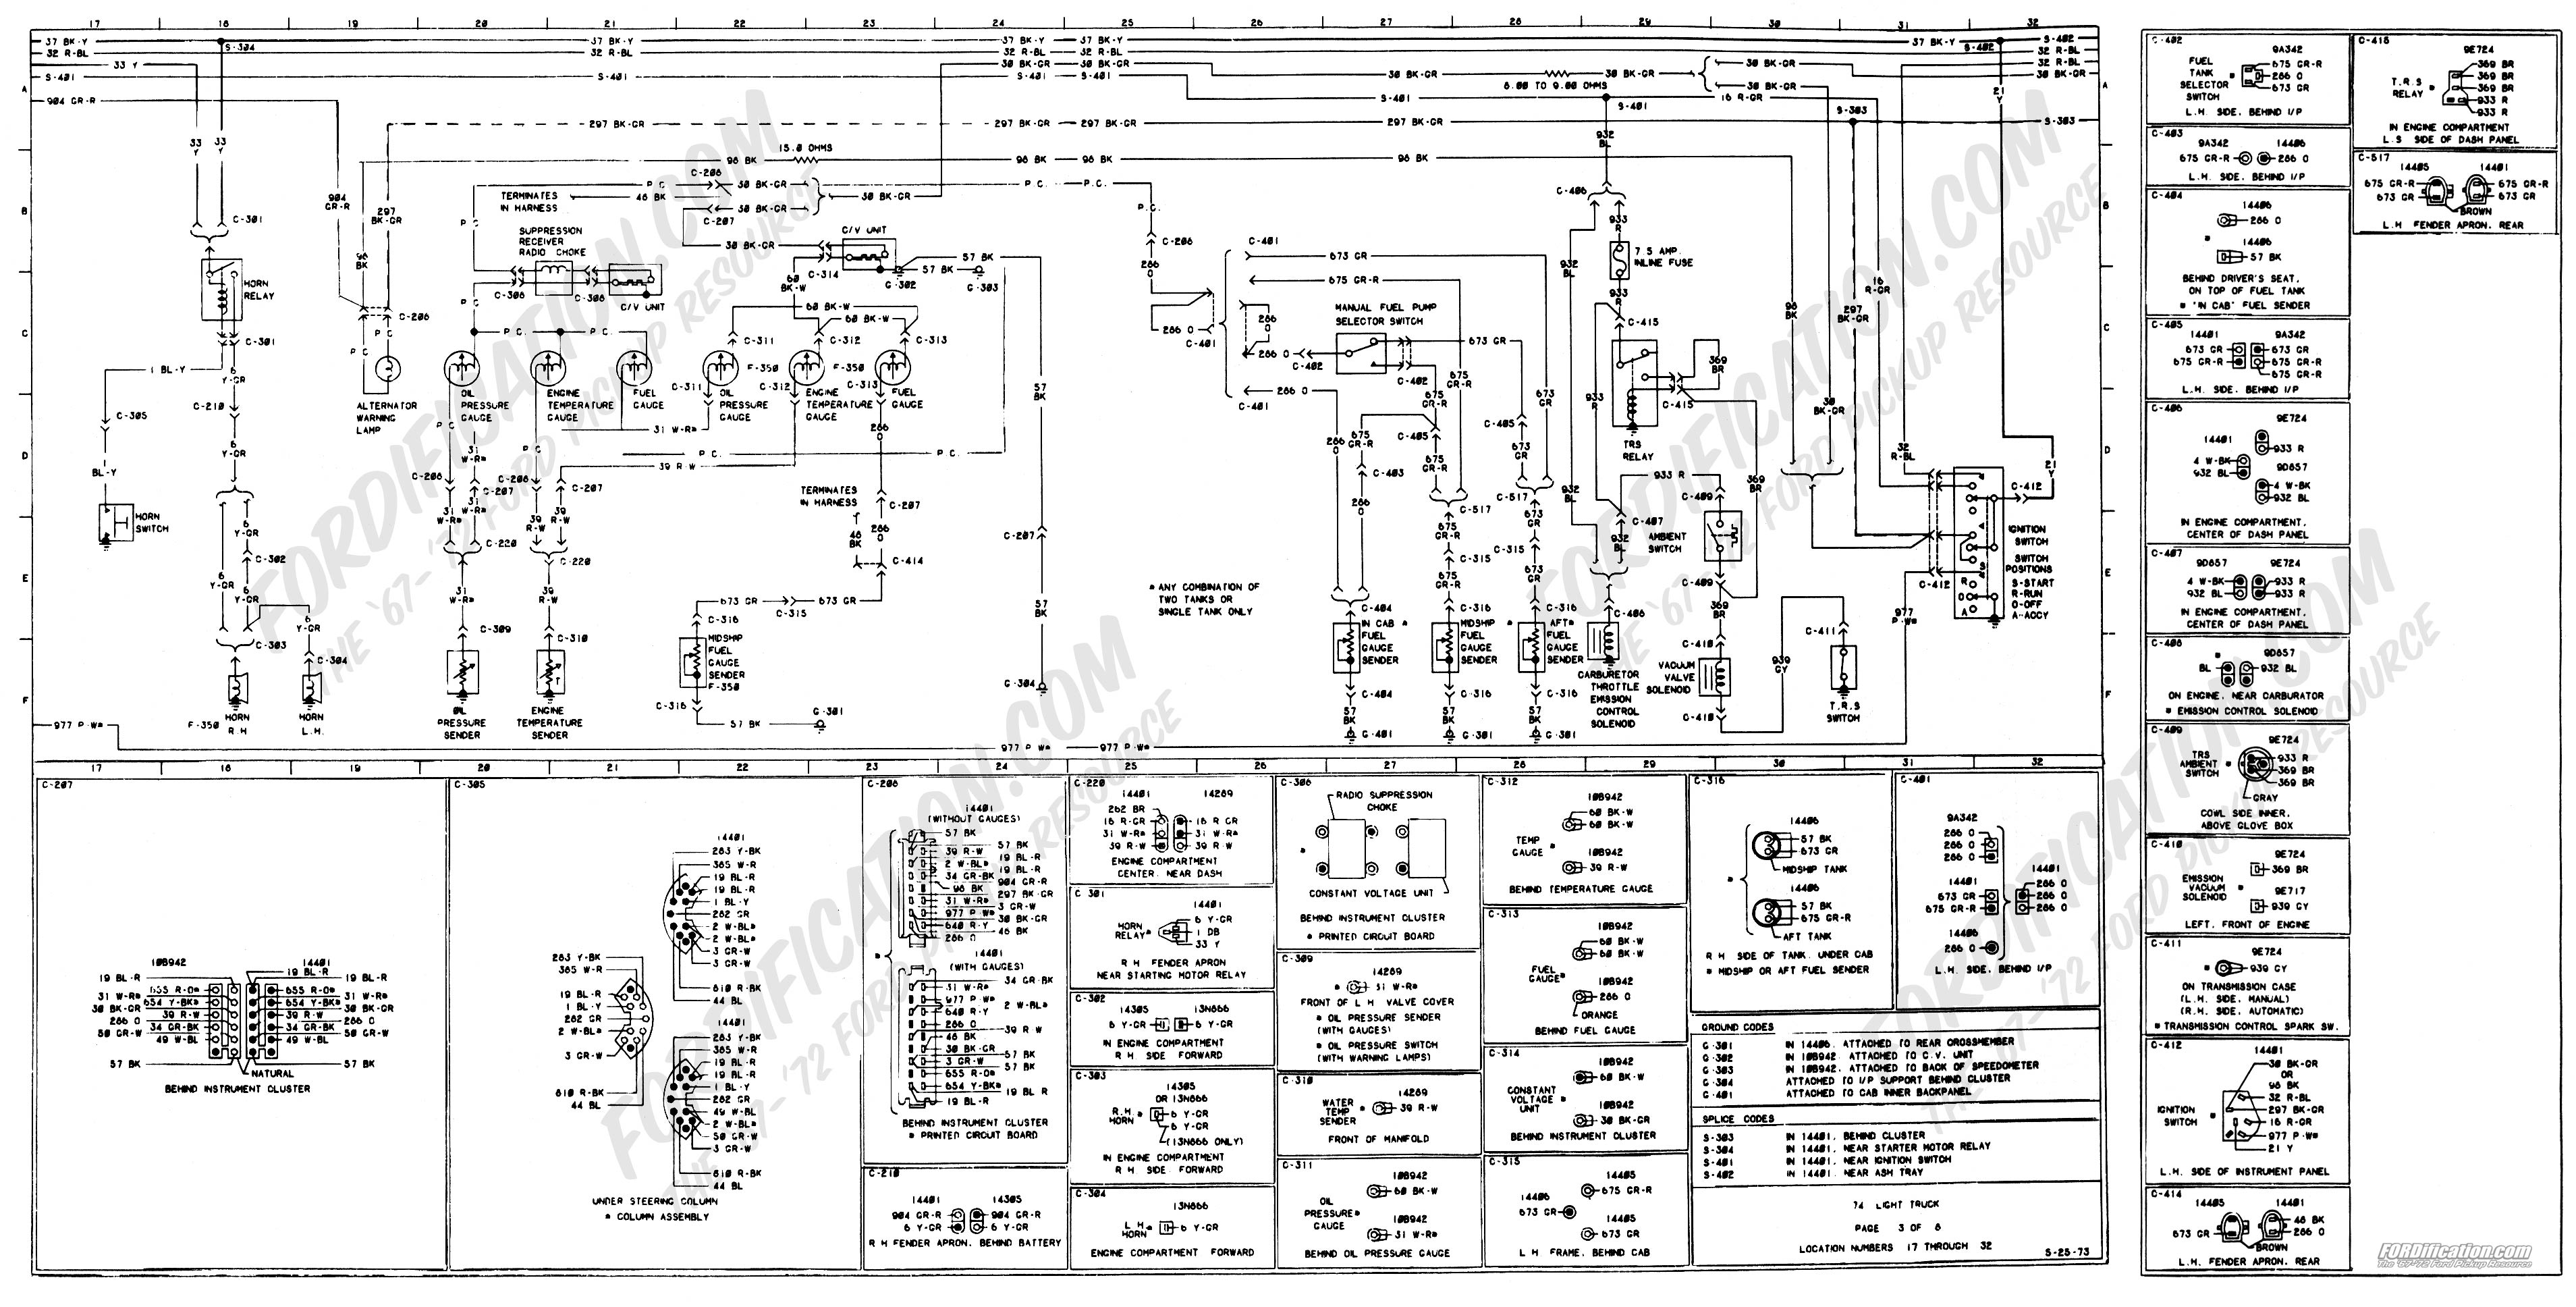 wiring_74master_3of8 1973 1979 ford truck wiring diagrams & schematics fordification net 1971 ford f250 wiring diagram at bayanpartner.co